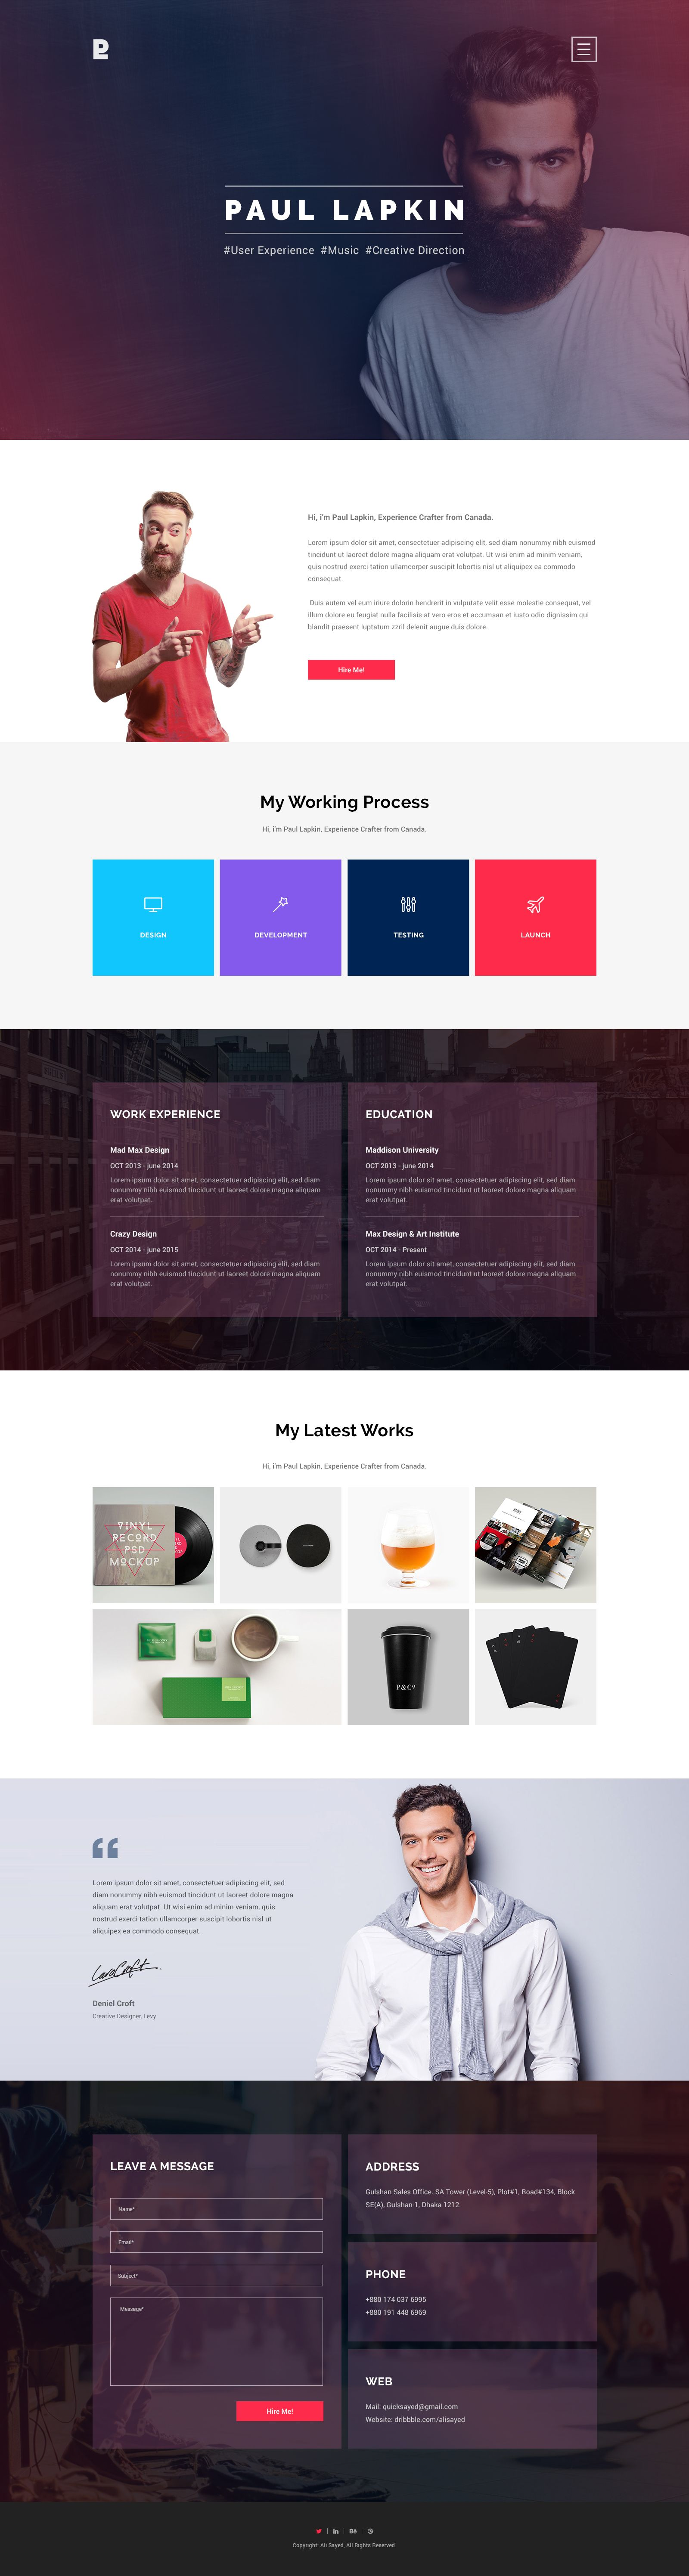 Gorgeous free website template Photoshop Freebies